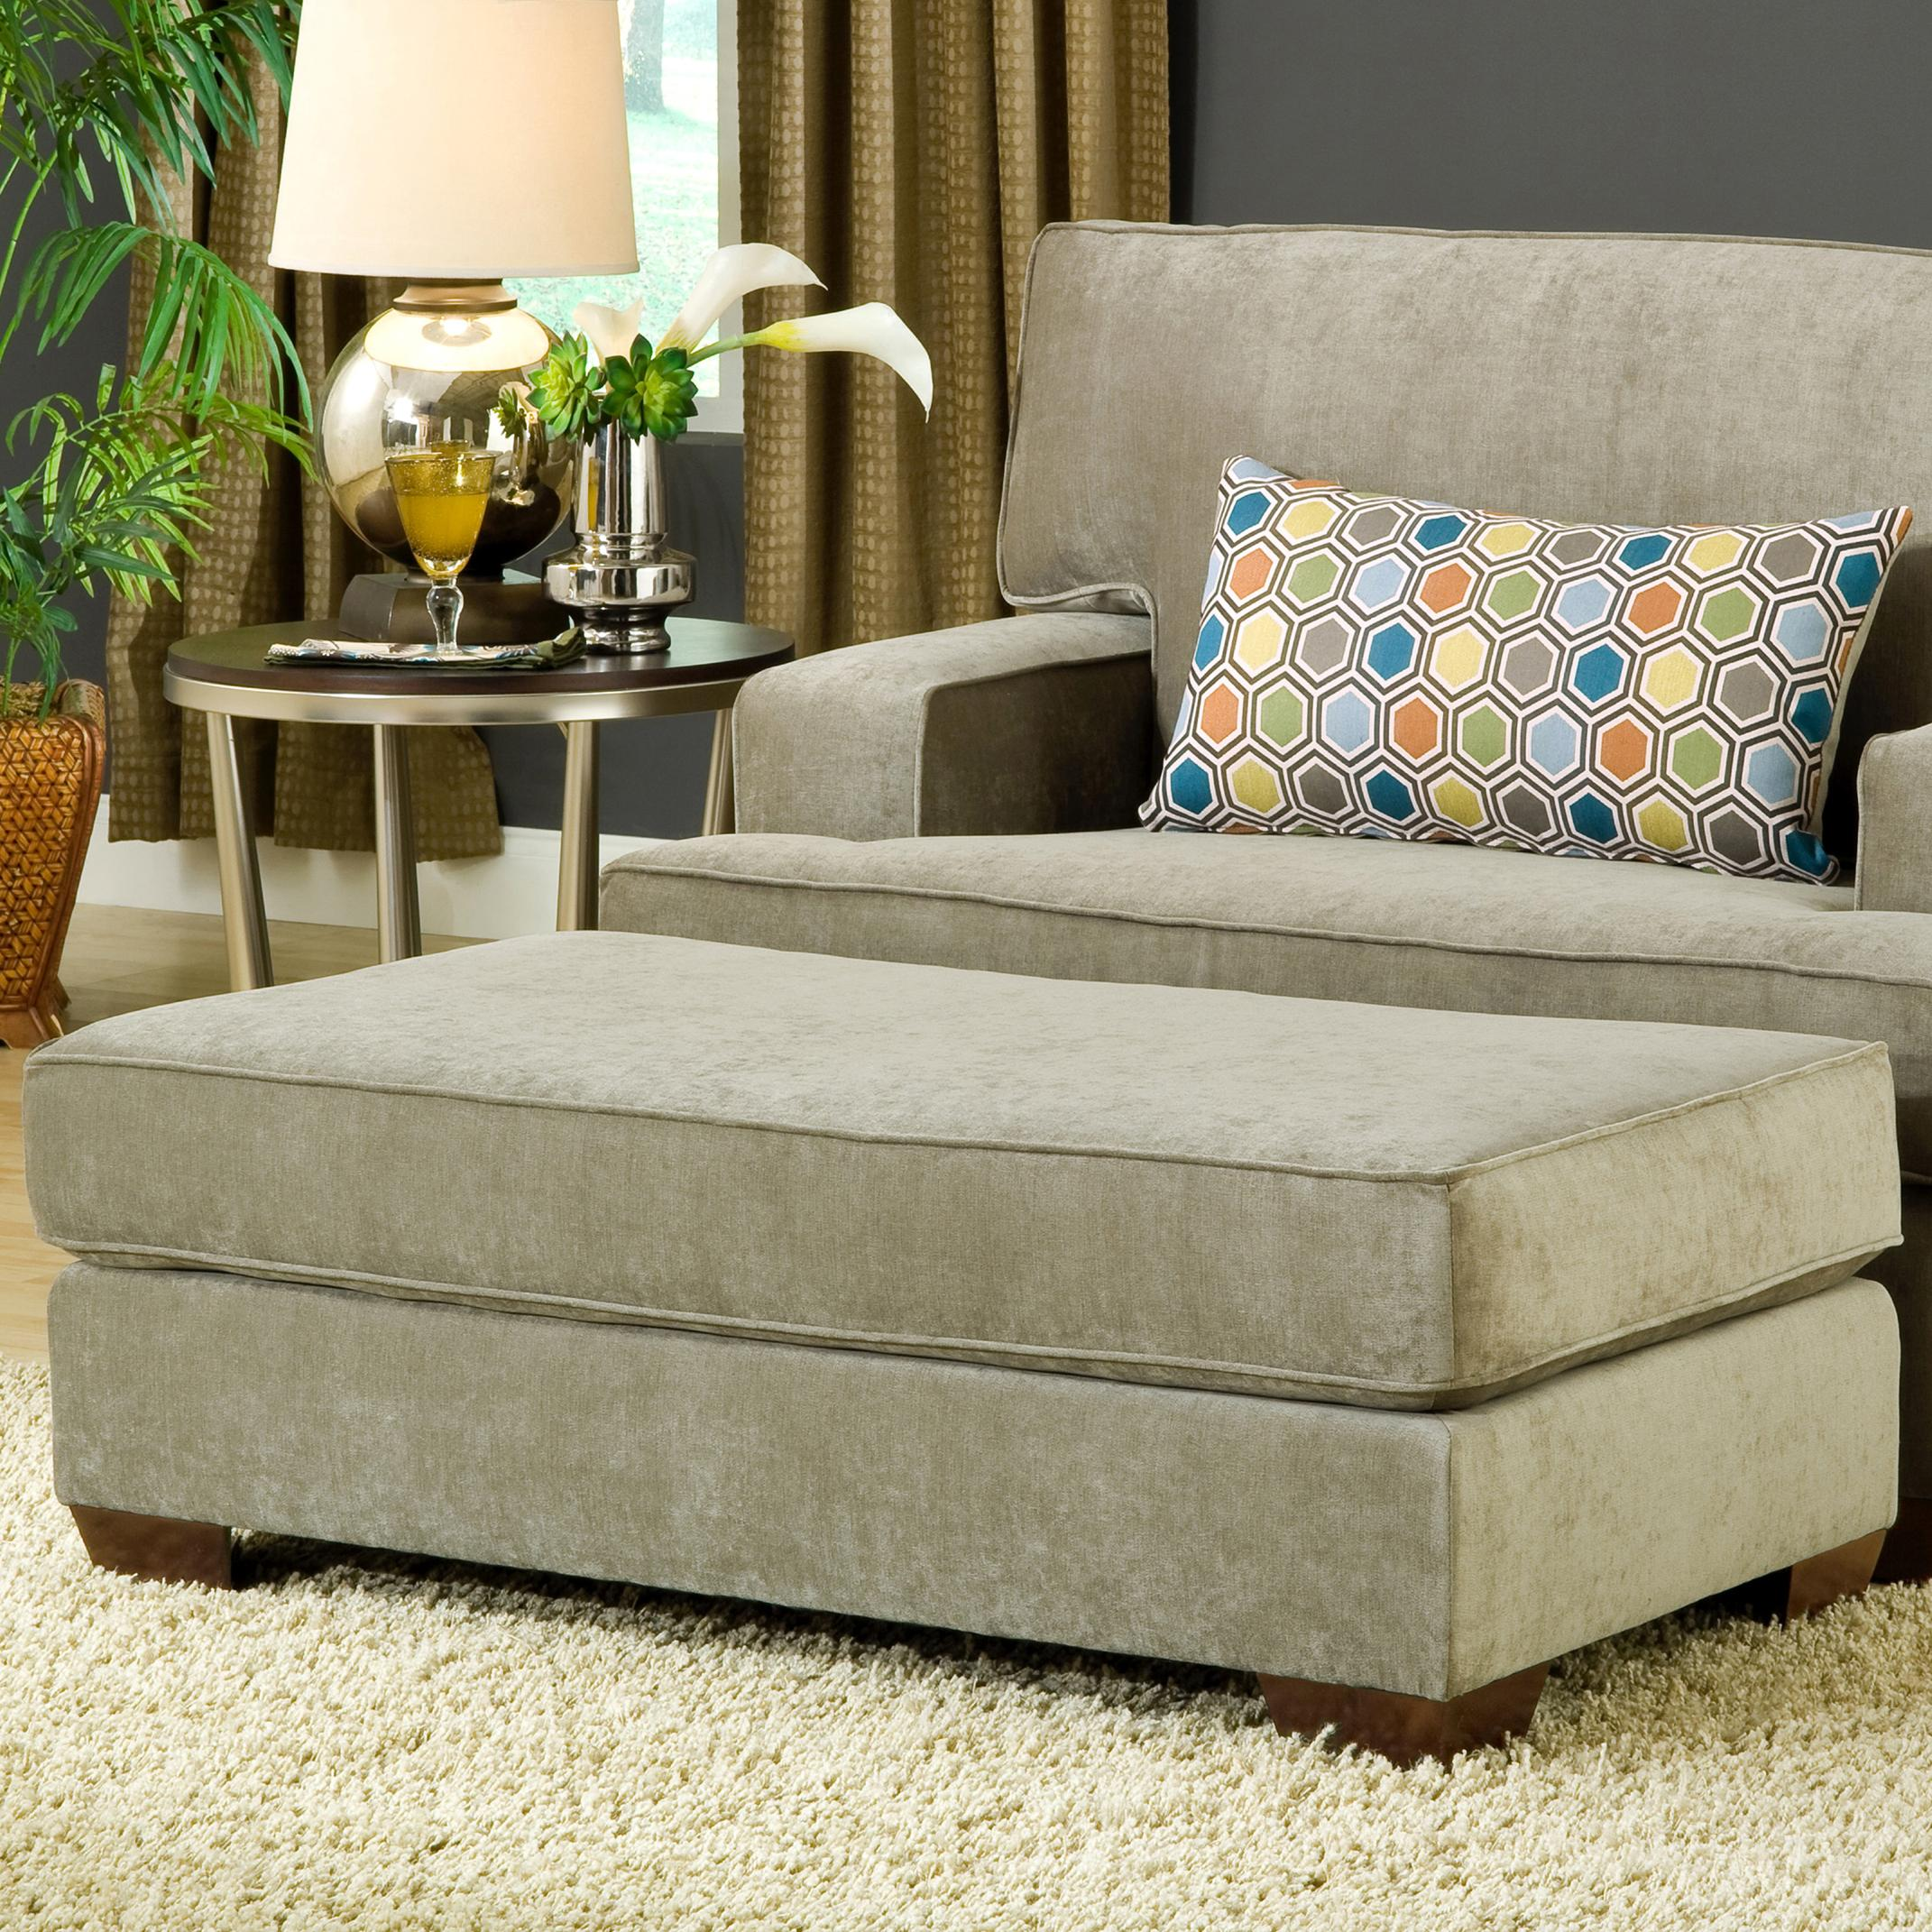 Belfort Essentials Daniel Upholstered Ottoman - Item Number: 5900-OO